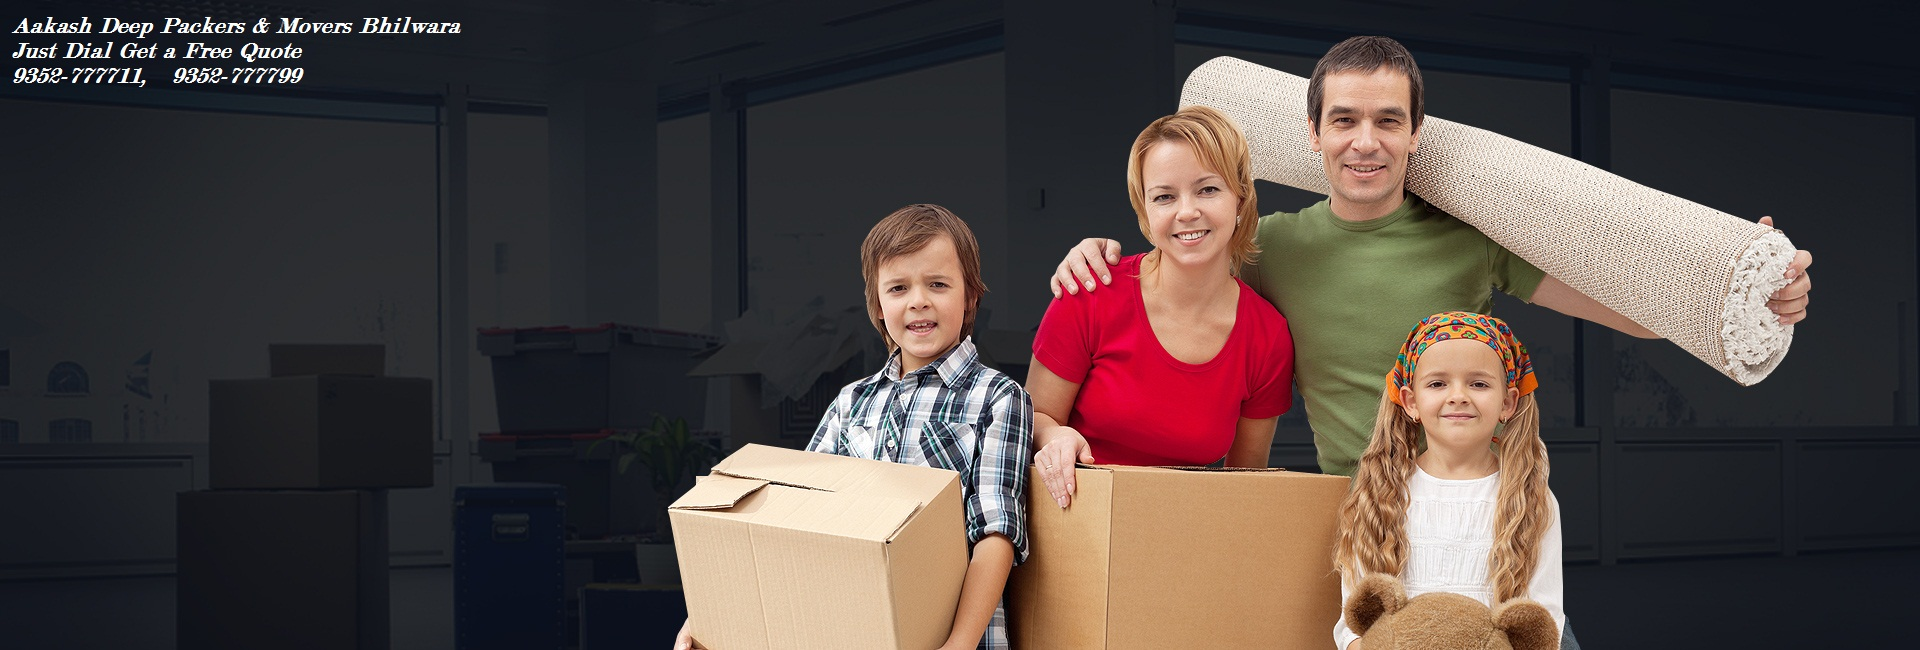 Packers And Movers in Bhilwara | Movers And Packers in Bhilwara | Packers And Movers Bhilwara | Movers And Packers Bhilwara